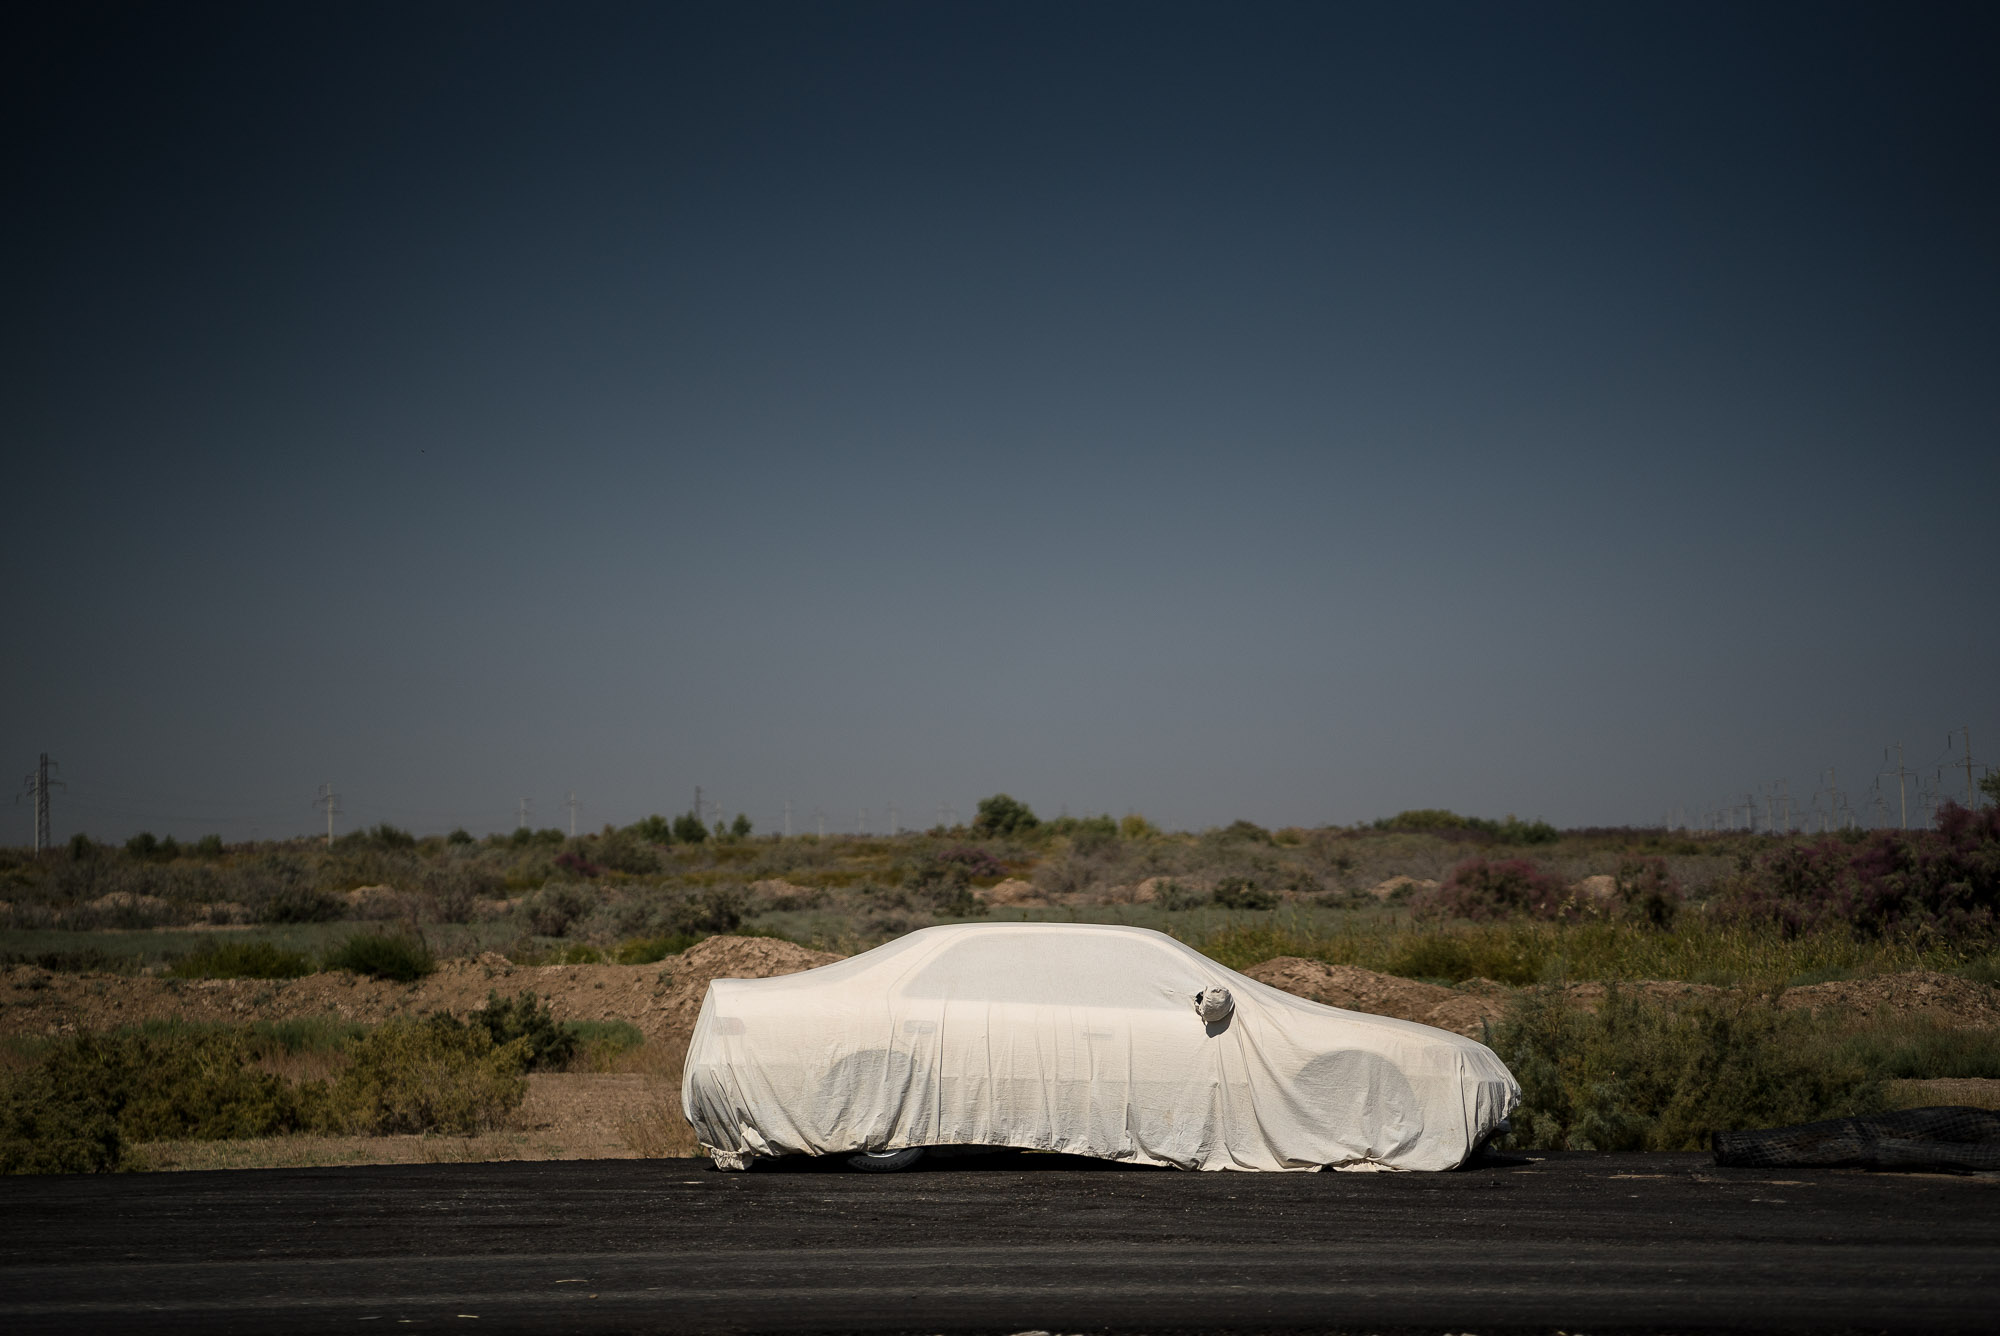 car under cover